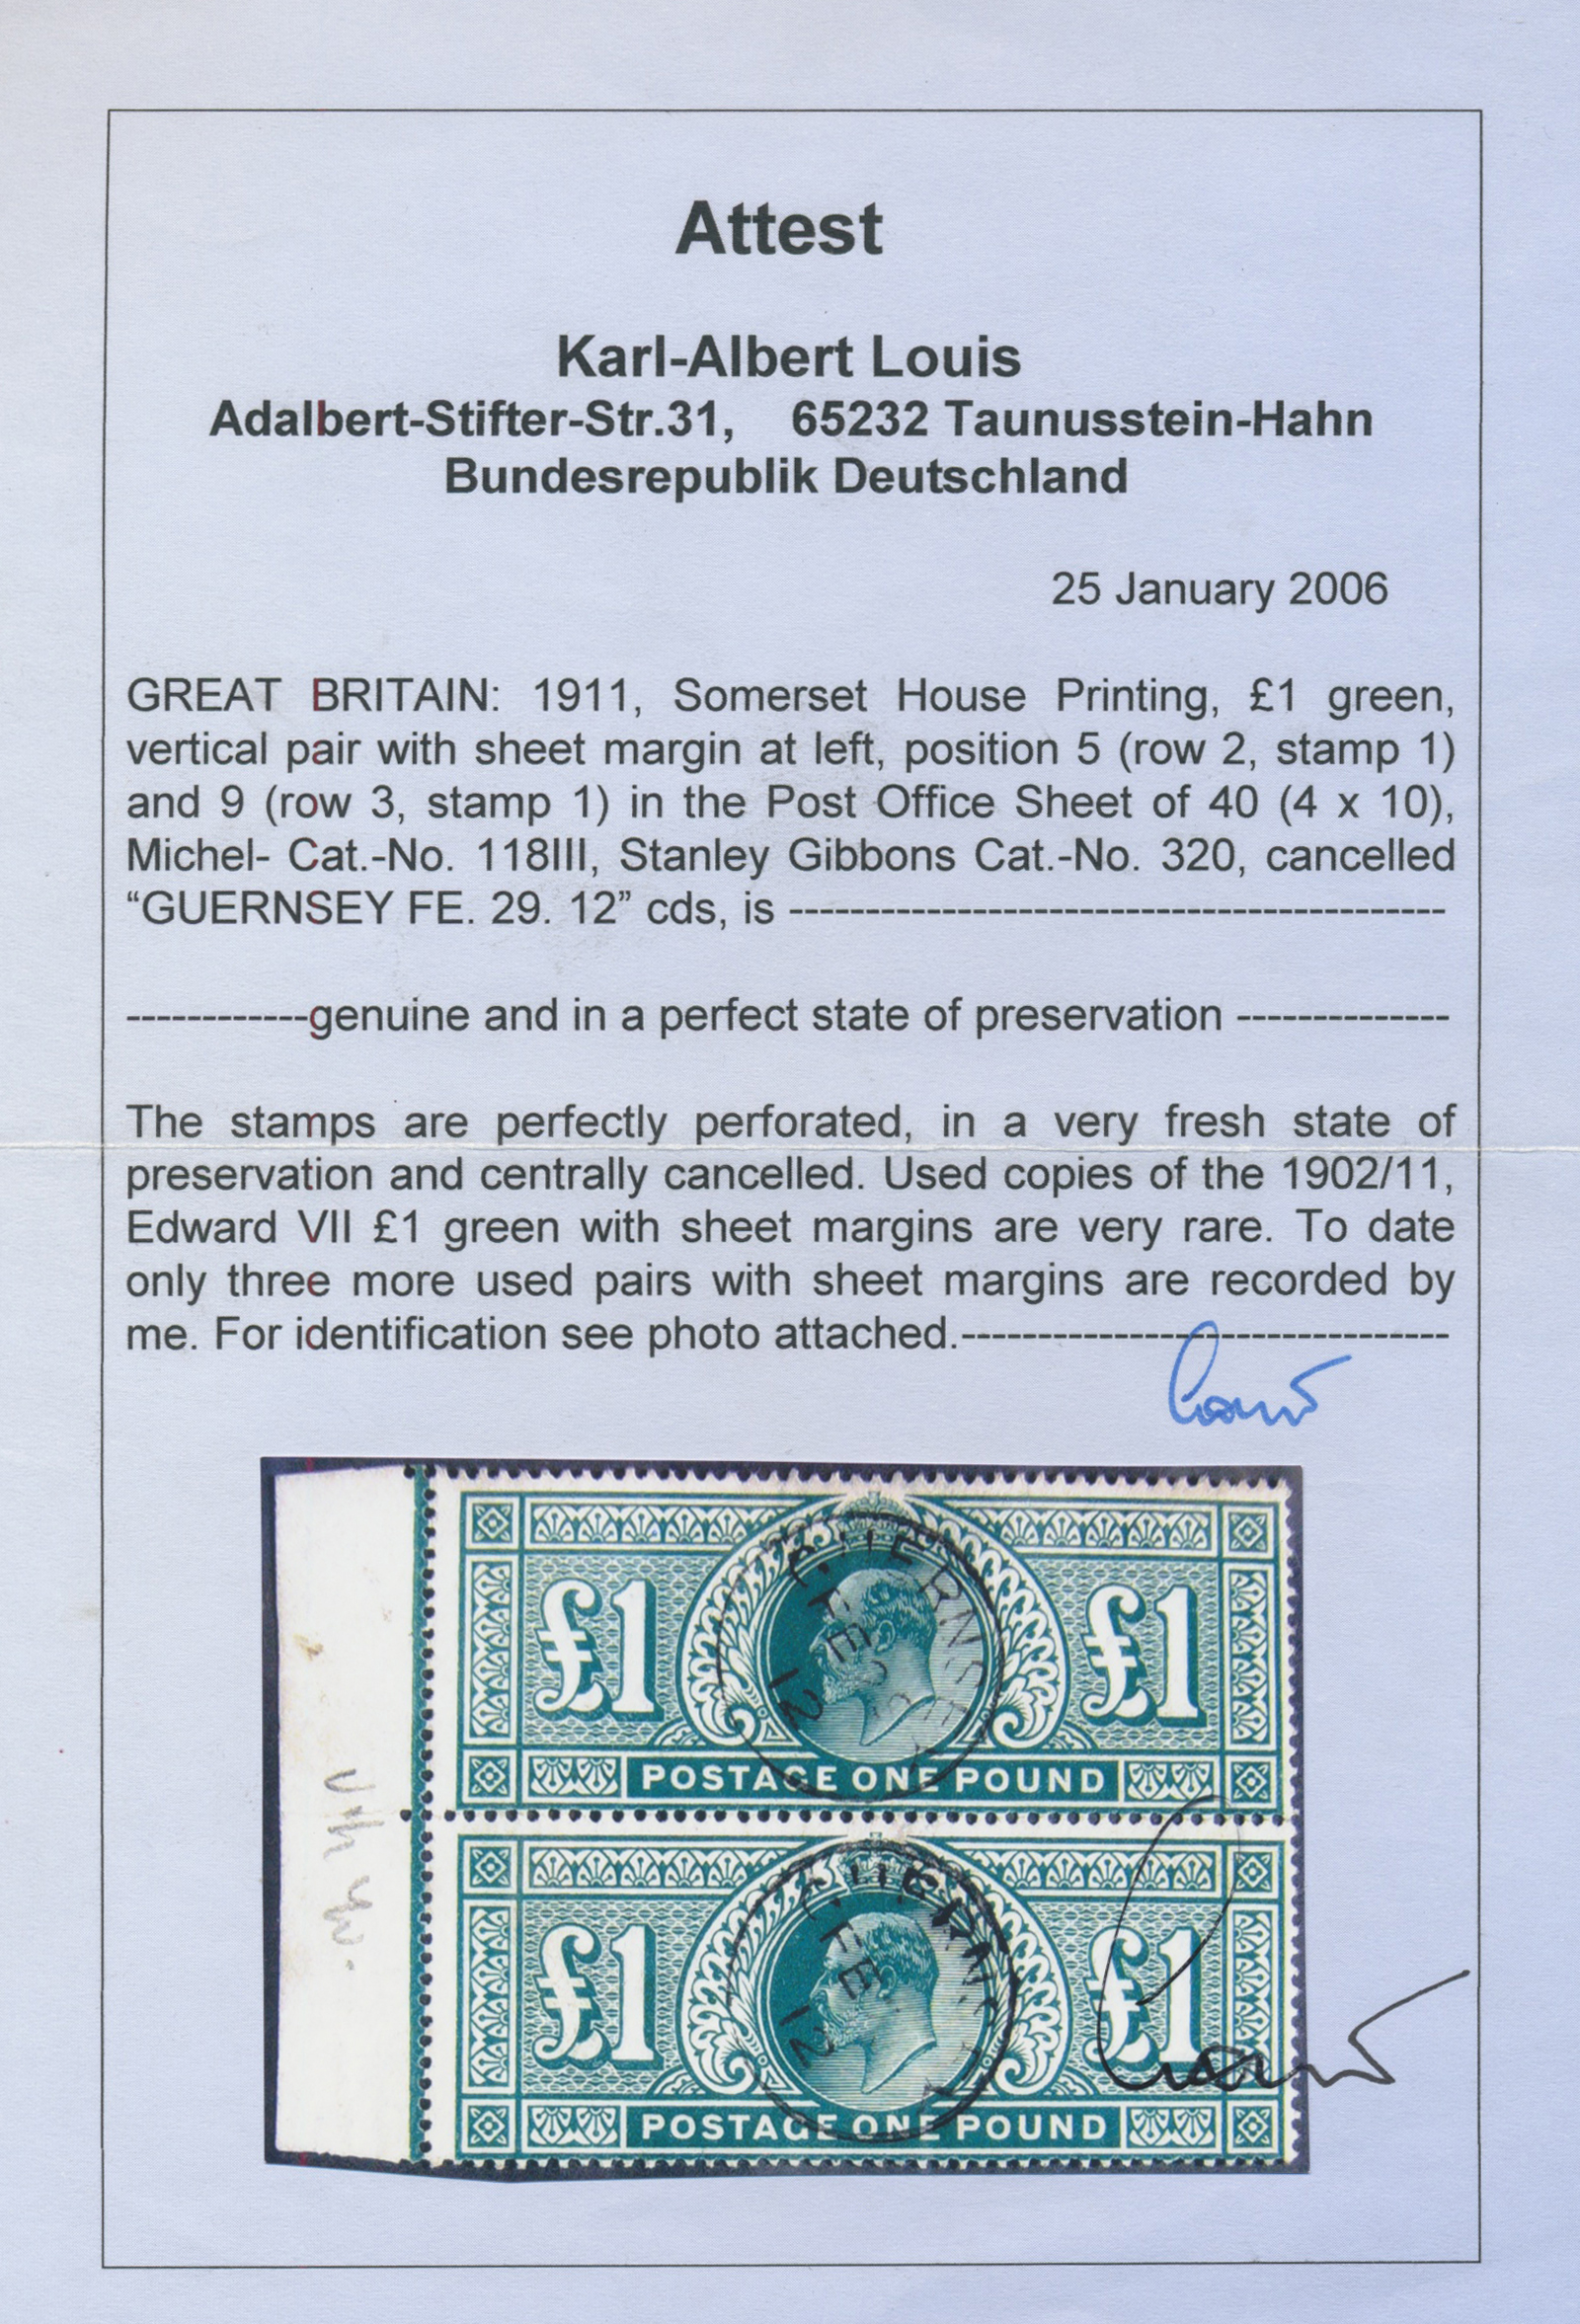 Lot 00004 - großbritannien  -  Auktionshaus Christoph Gärtner GmbH & Co. KG Intenational Rarities and contains lots from the collection of Peter Zgonc